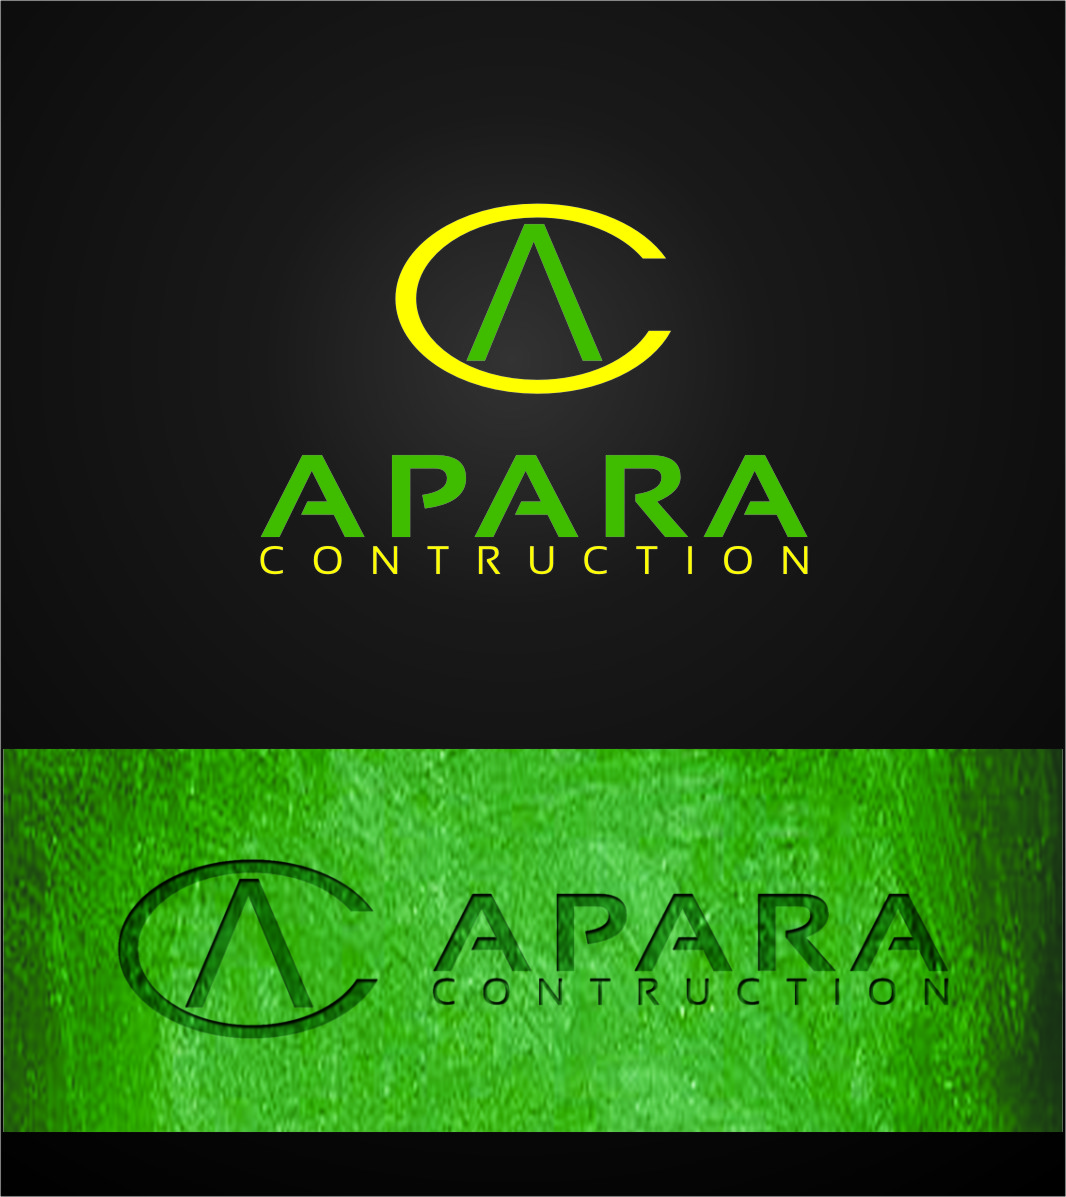 Logo Design by Ngepet_art - Entry No. 87 in the Logo Design Contest Apara Construction Logo Design.